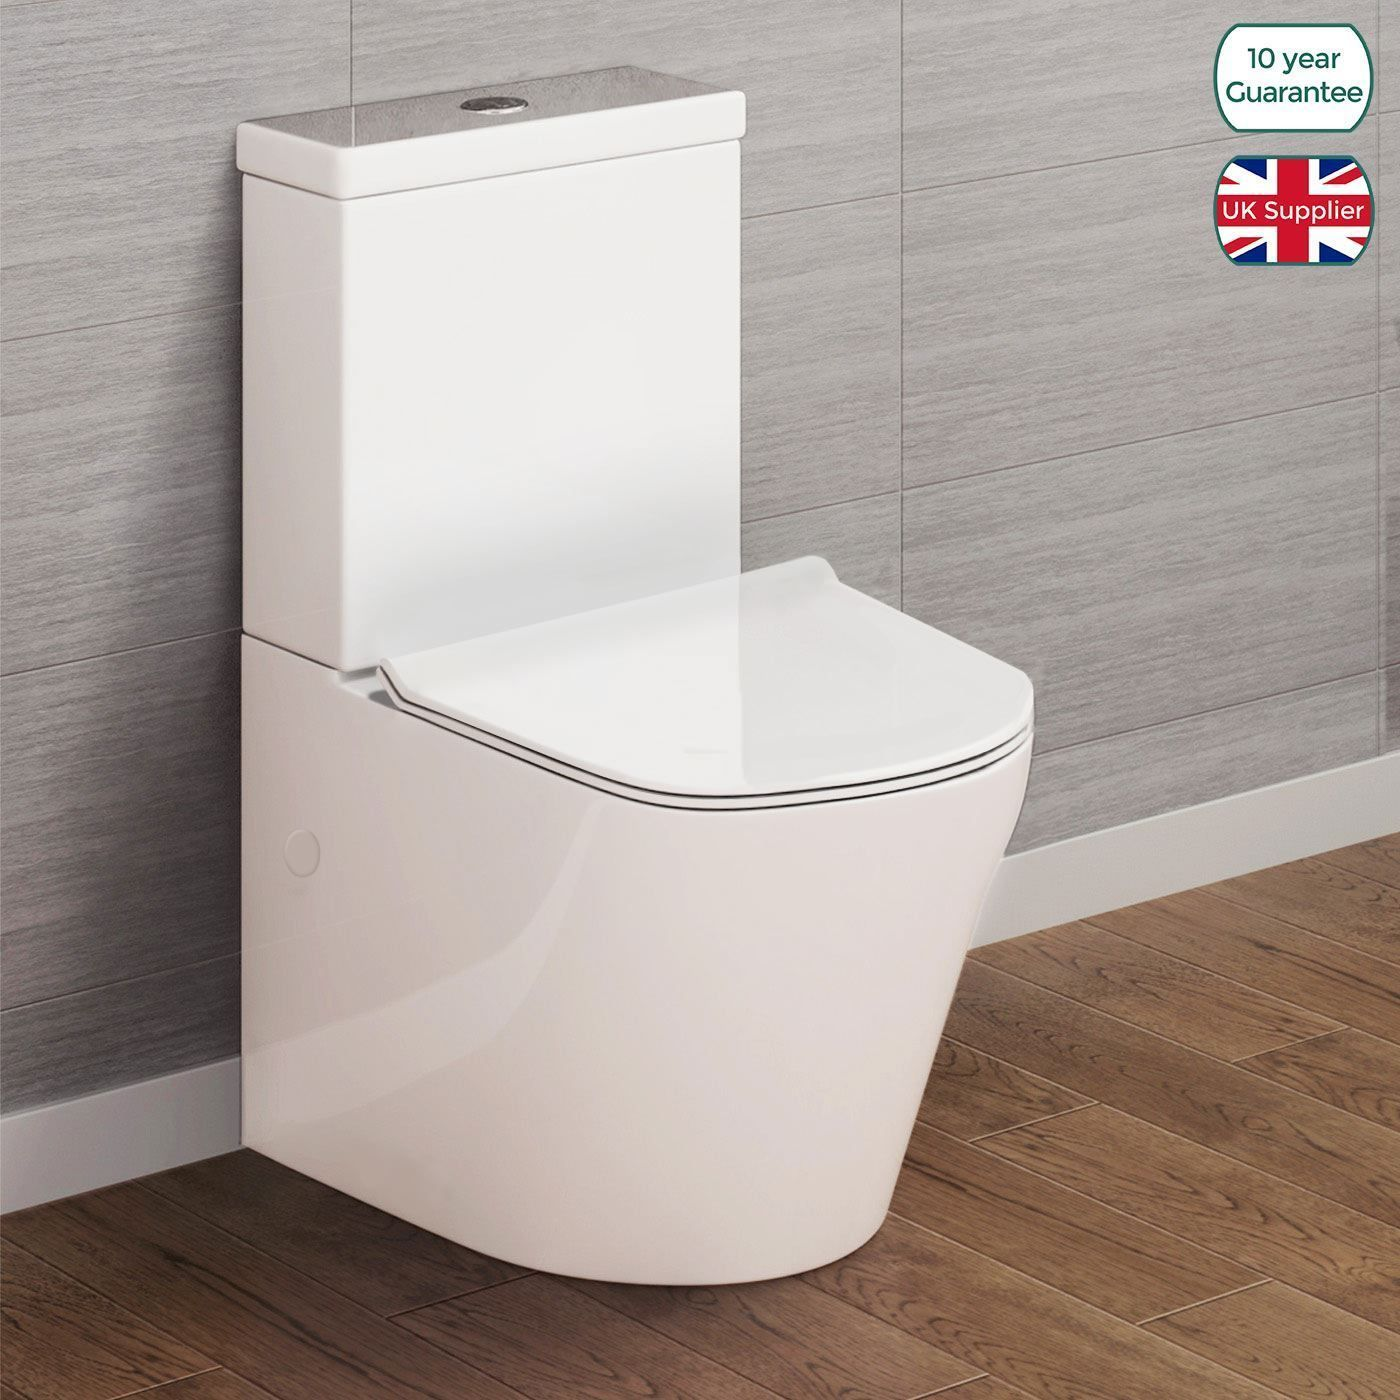 Oakham White Close Coupled Bathroom Toilet Wc Pan Seat Ceramic